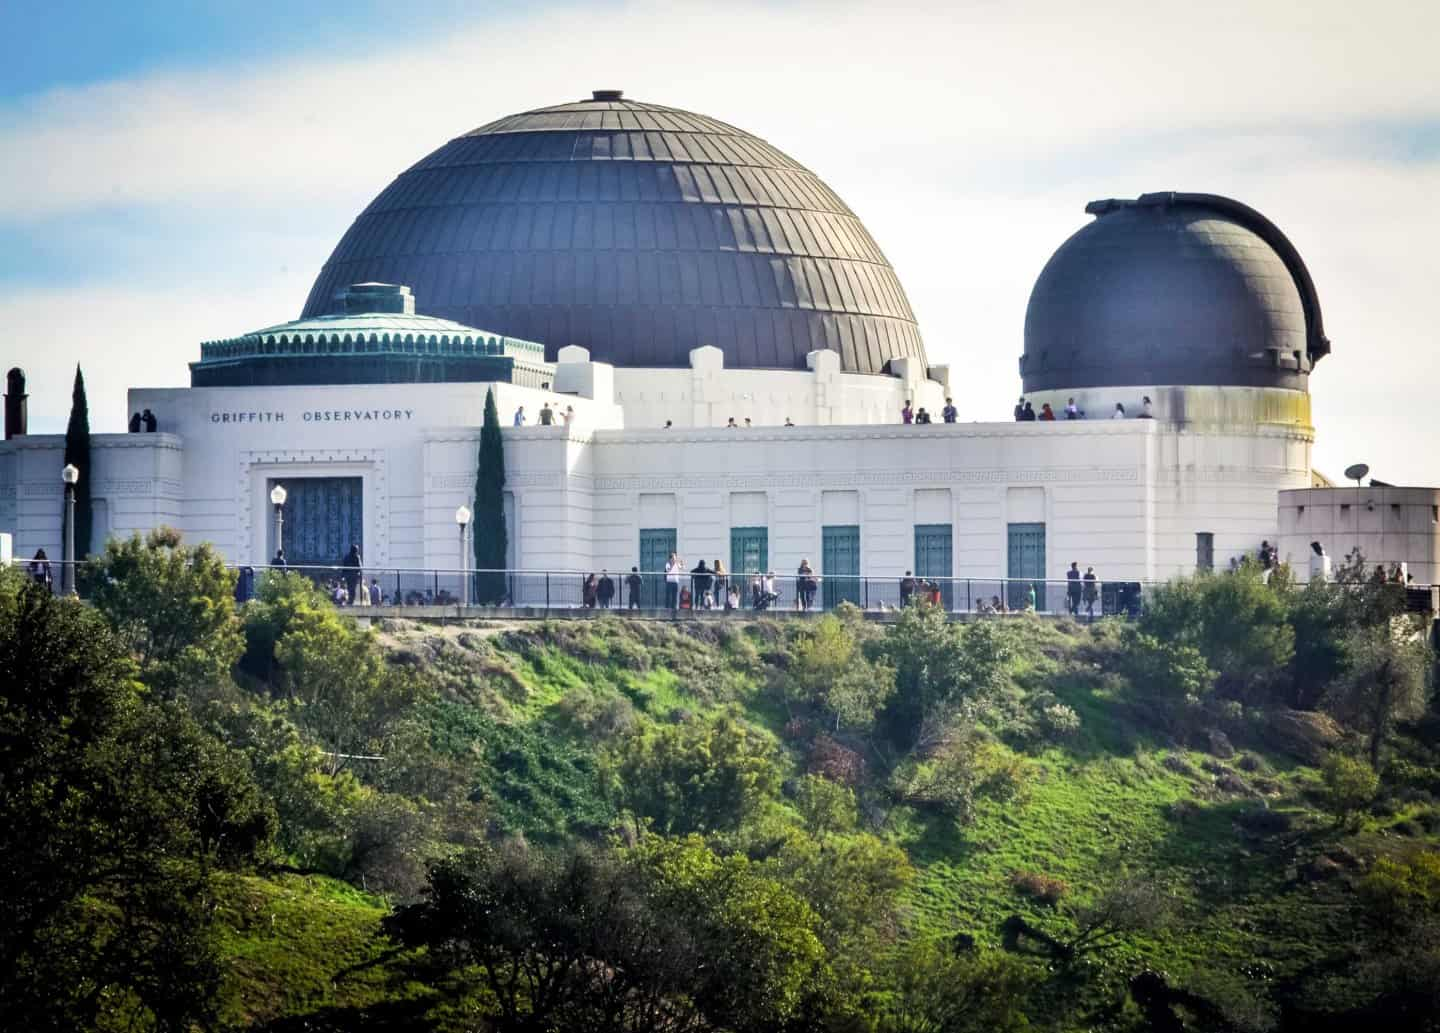 The Griffith Observatory - a must on your LA bucket list